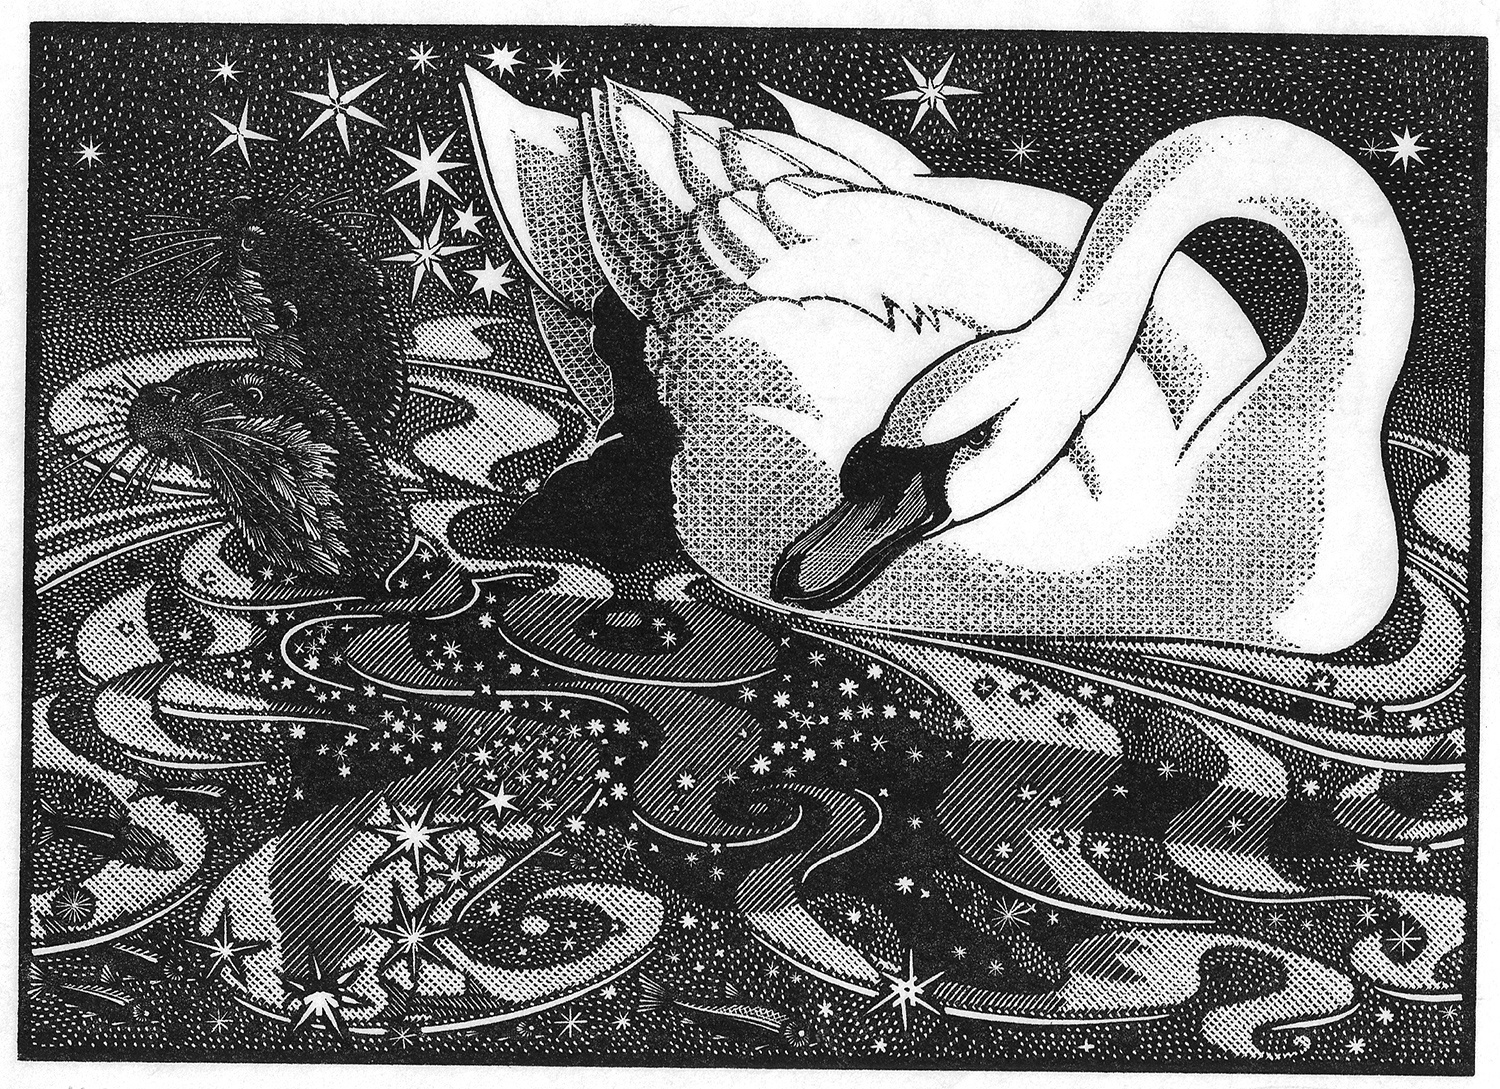 Nocturnal Encounters-Swan and Otters by Colin See-Paynton